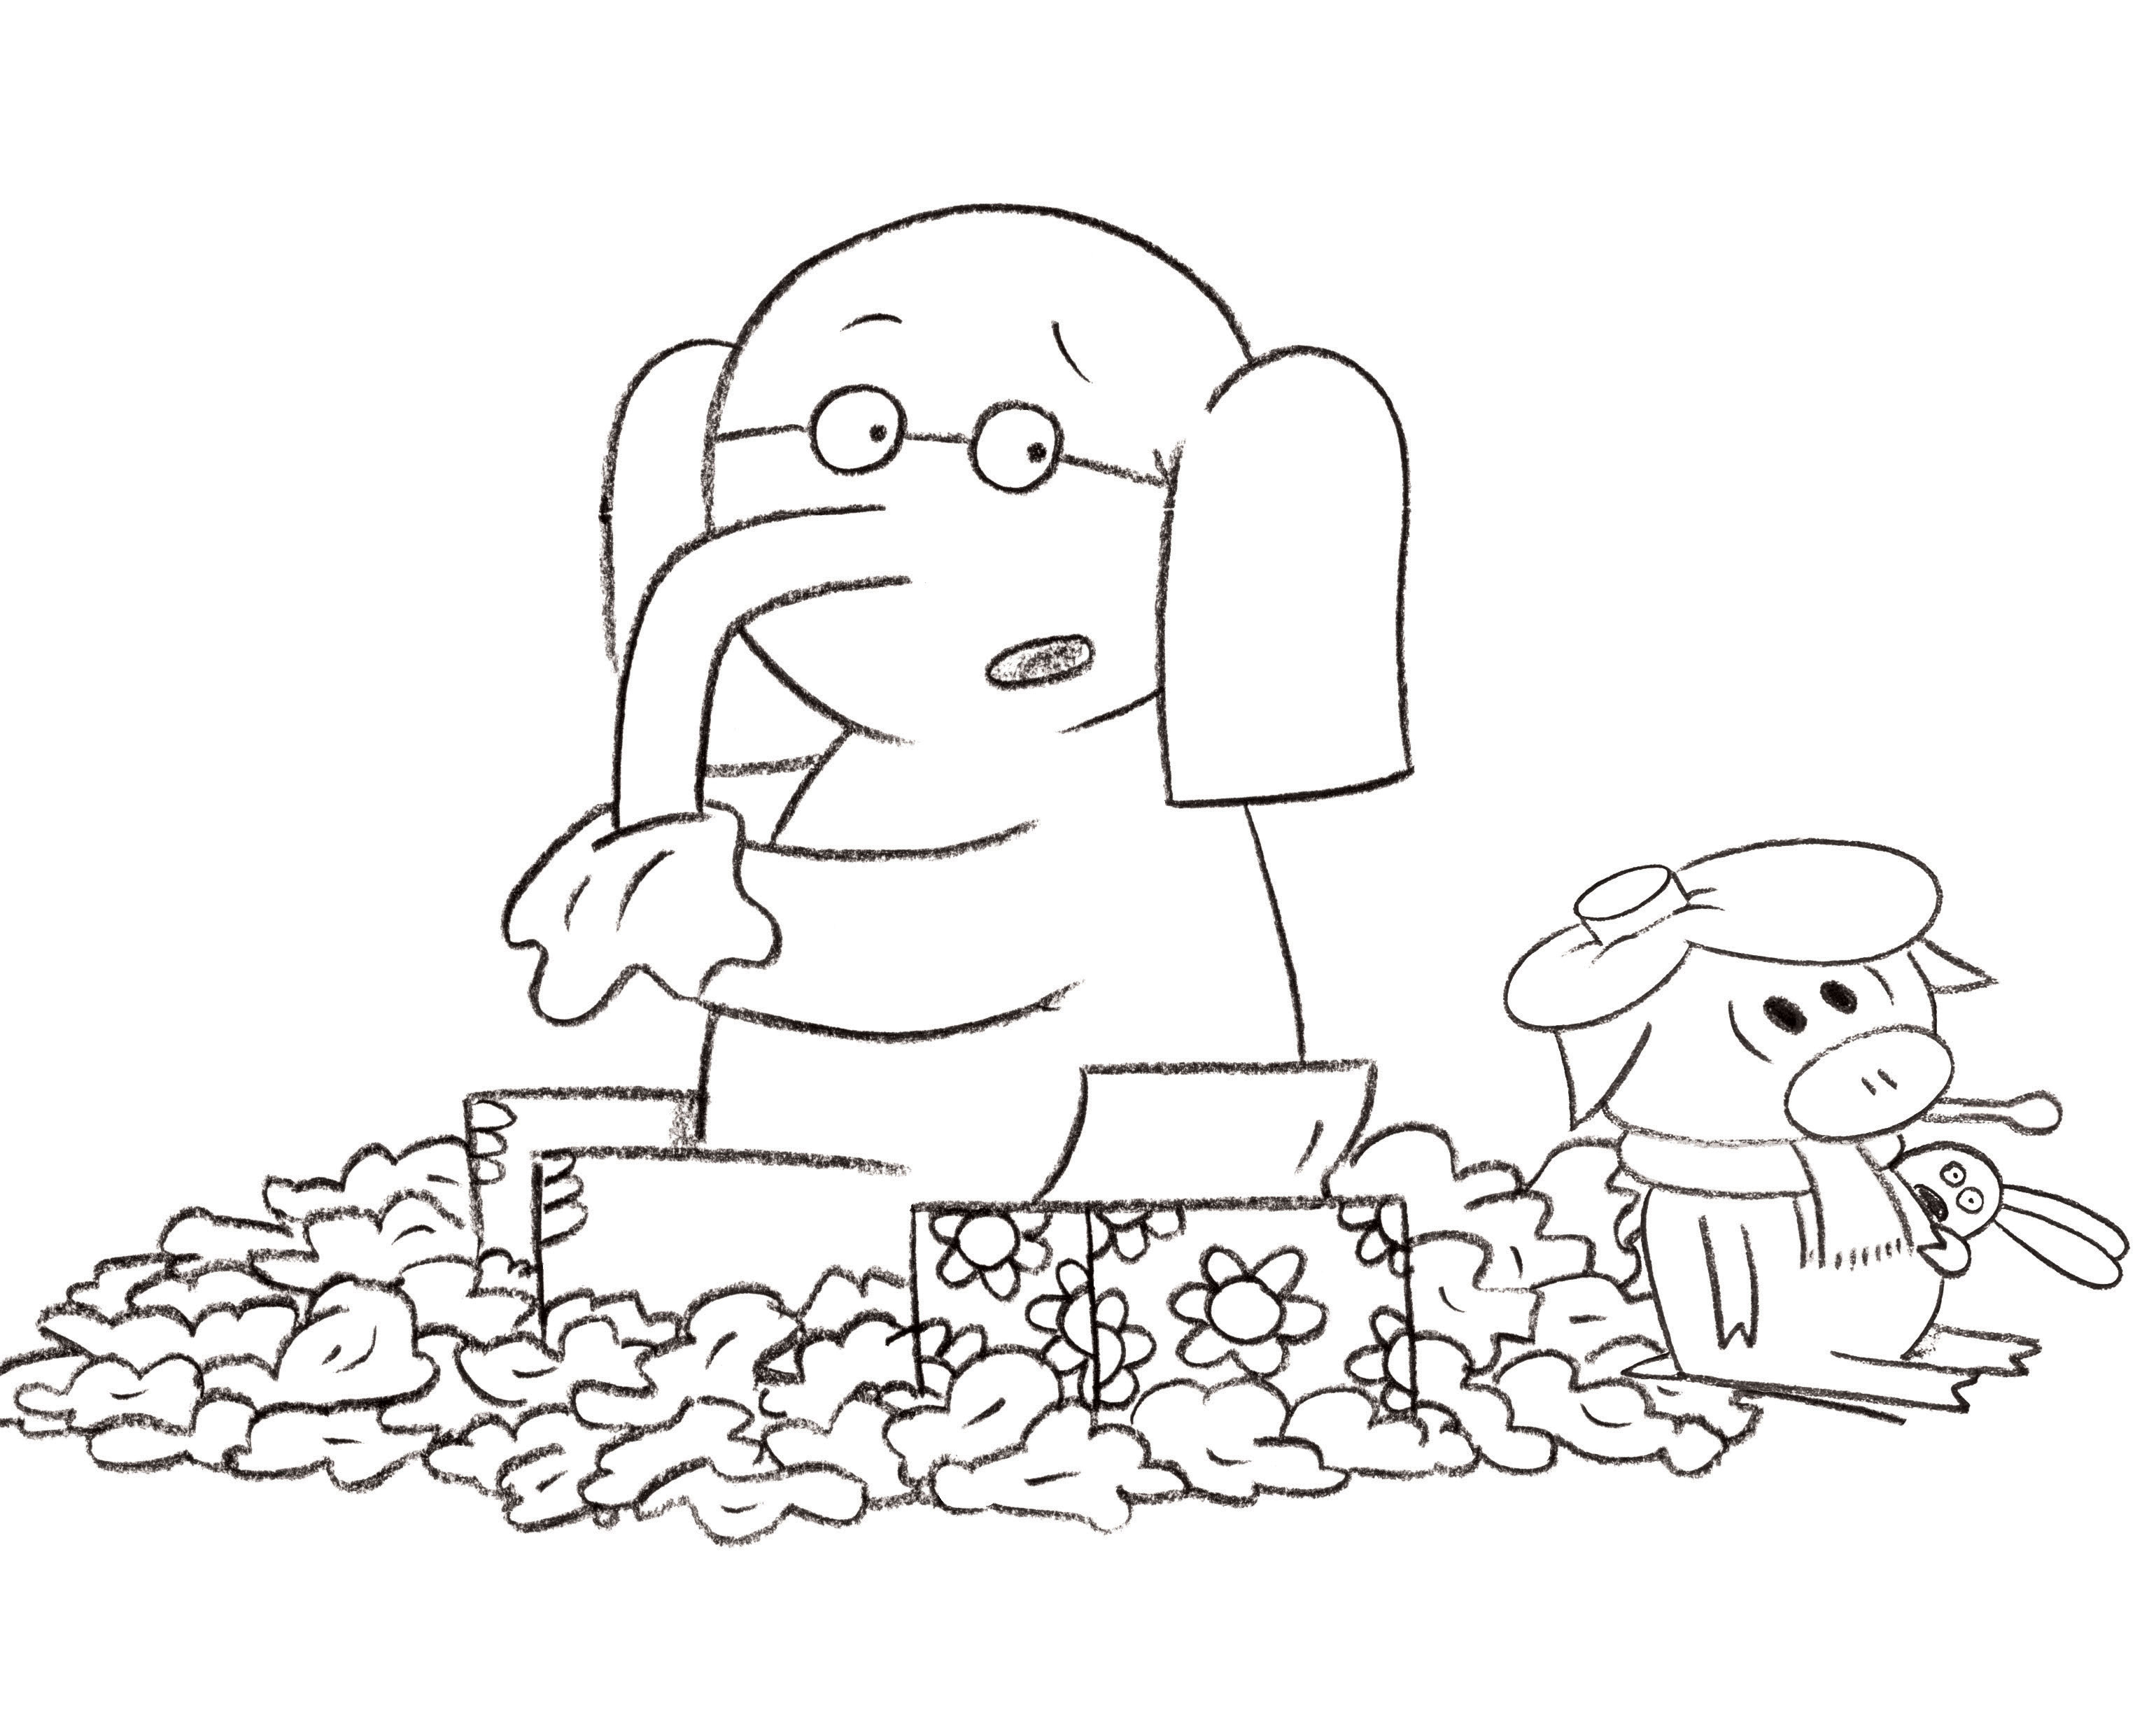 piggy and elephant coloring pages - photo#11